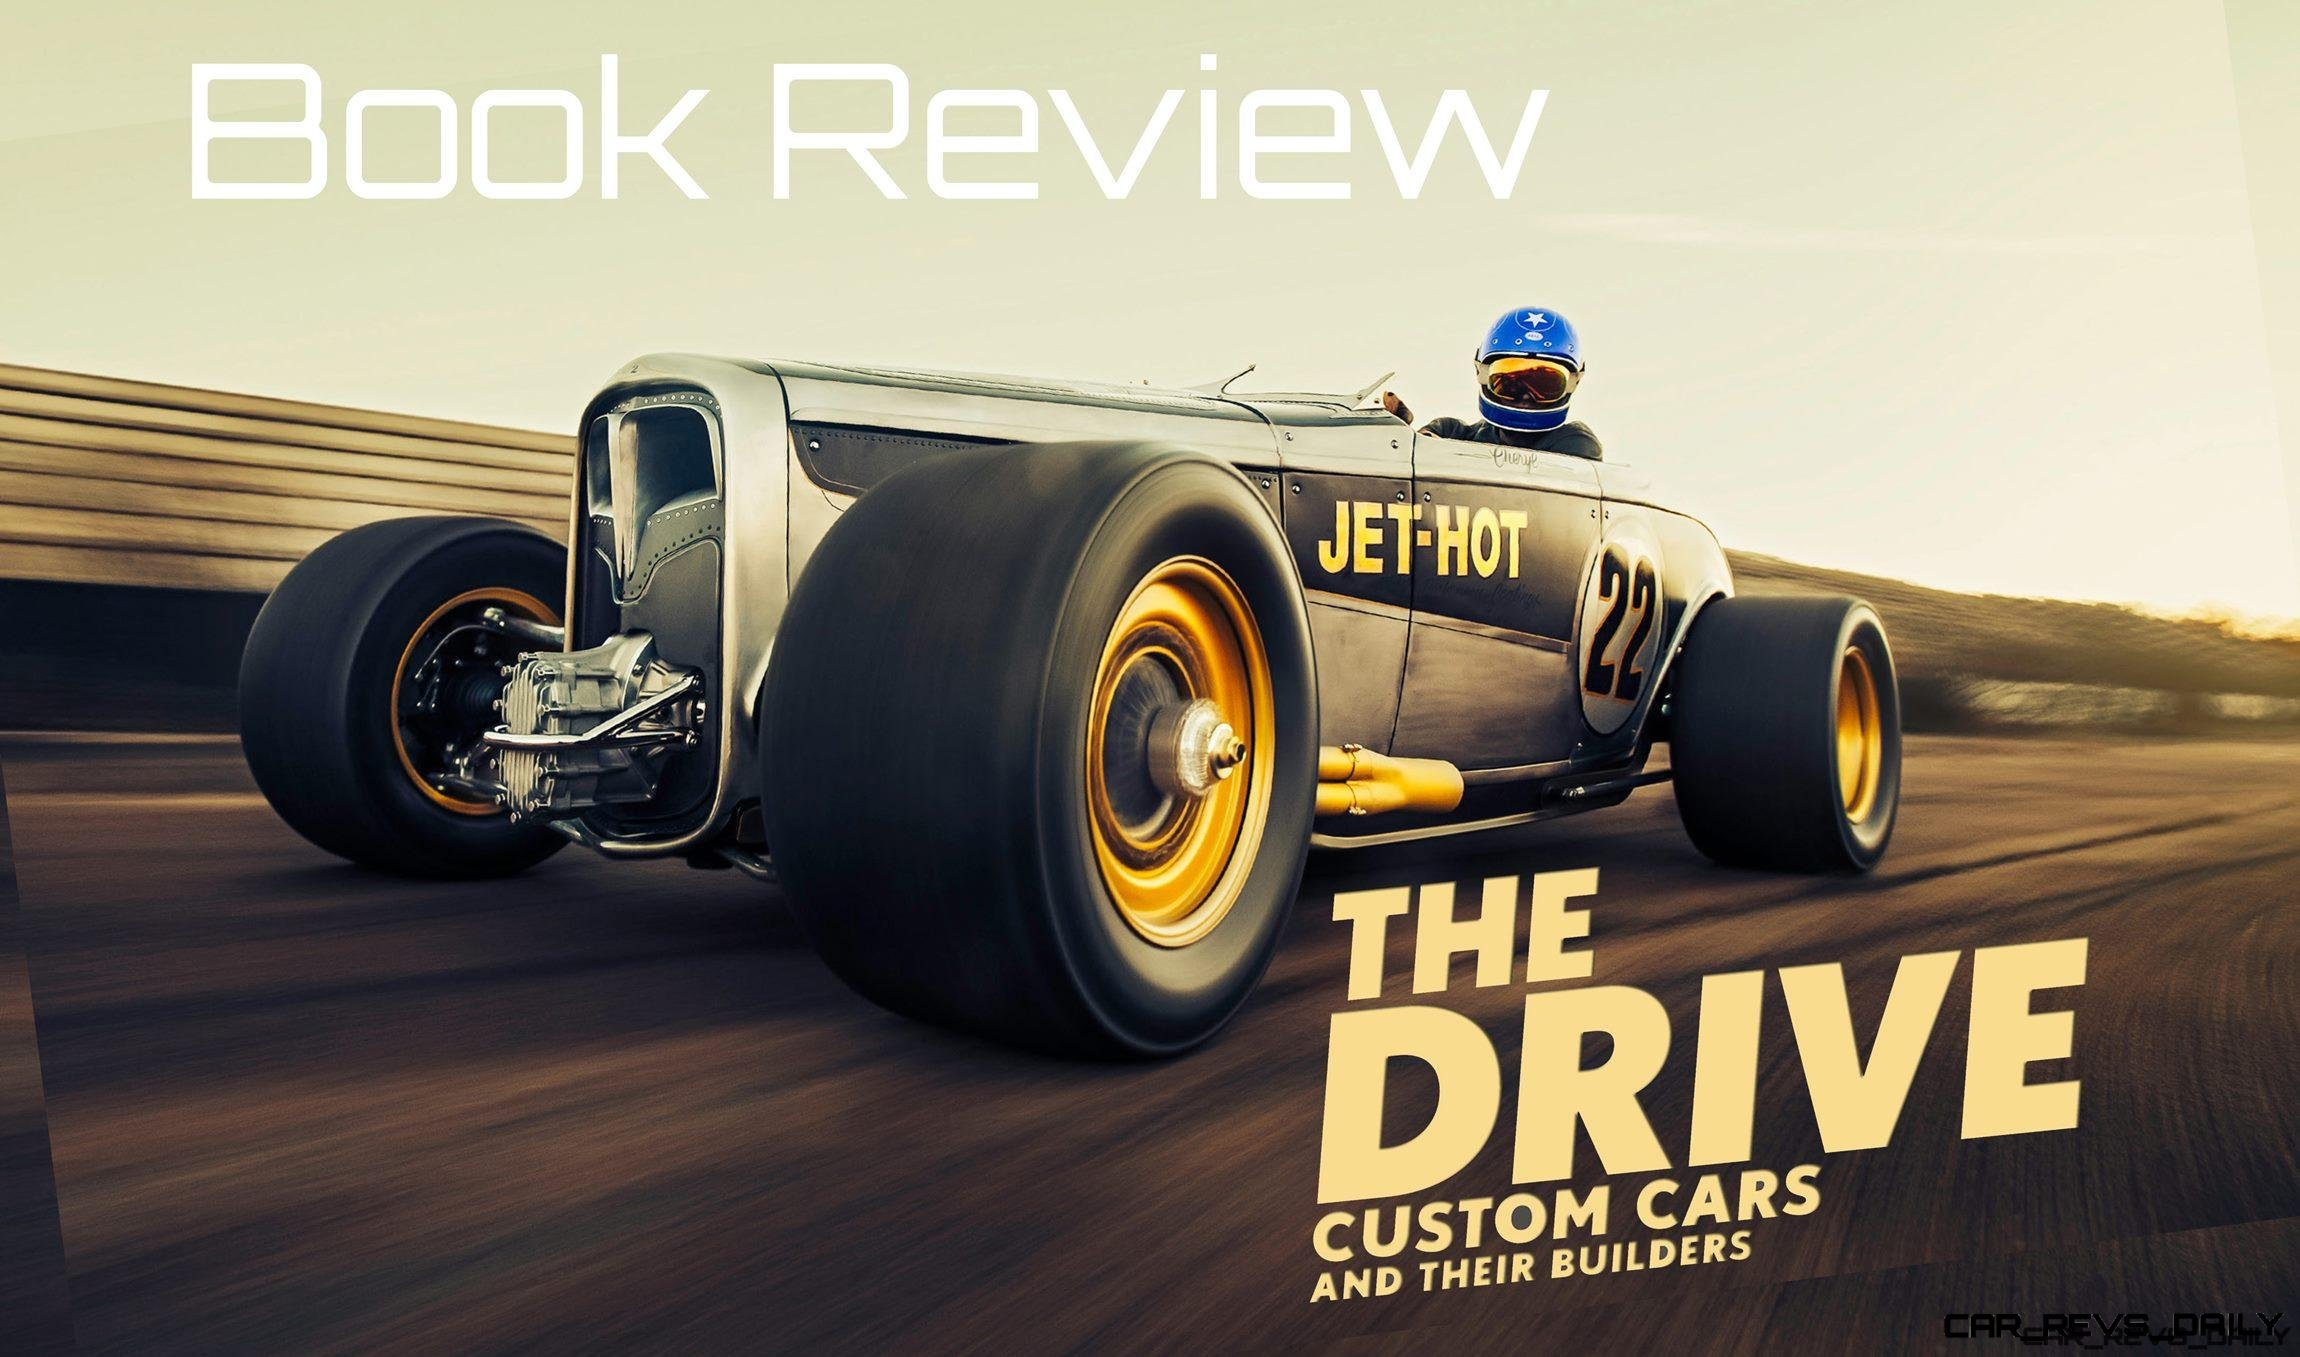 David Arnouts Book Review - The Drive: Custom Cars and Their